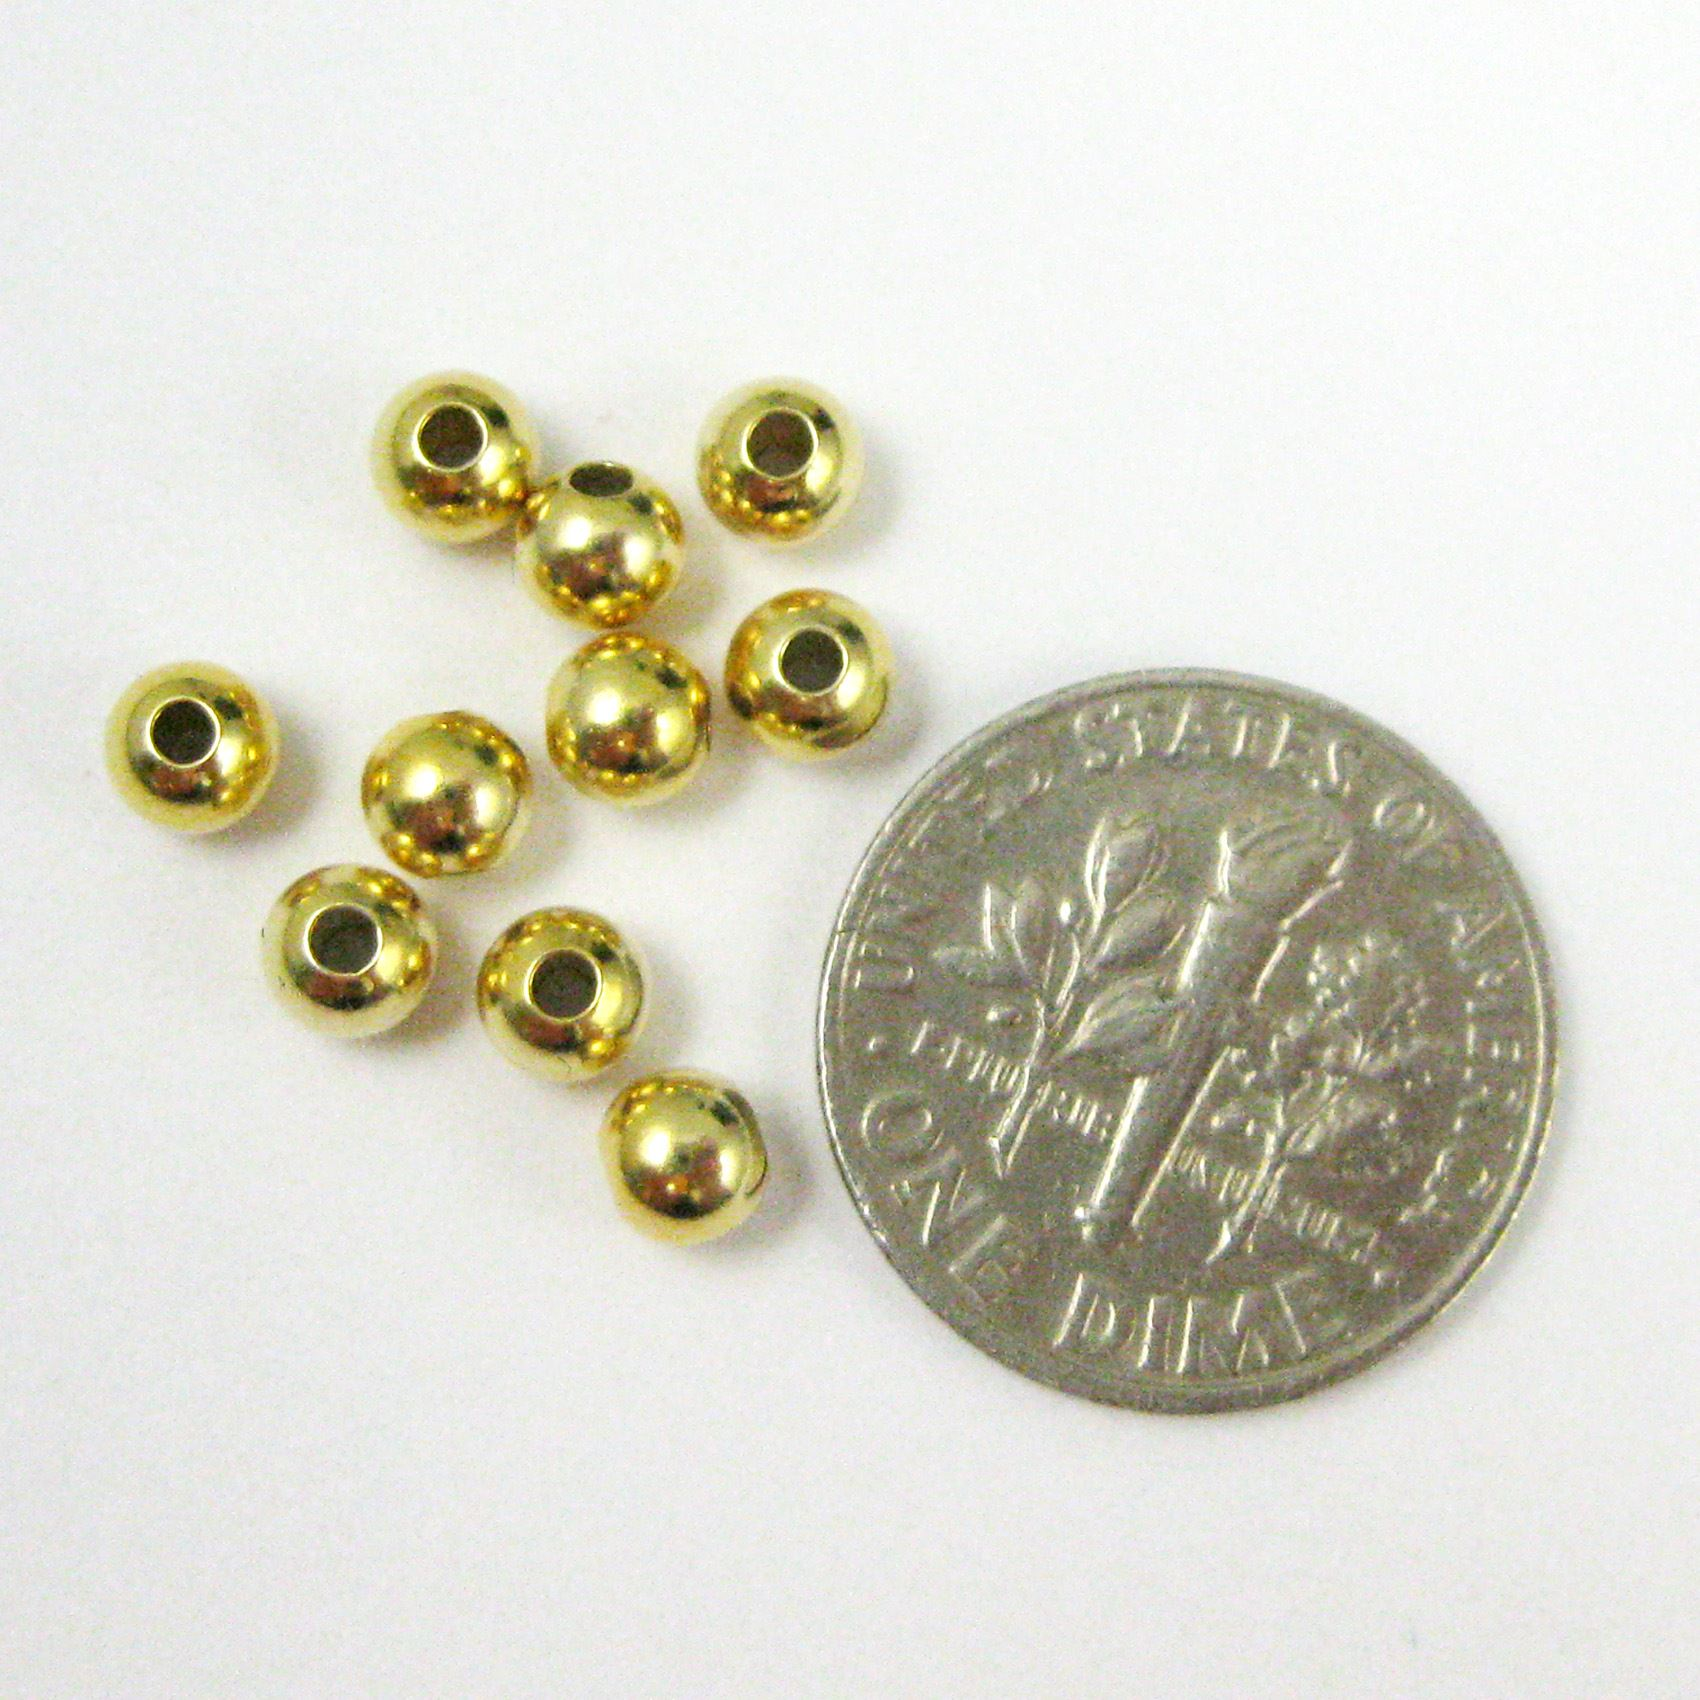 Vermeil, Gold plated over Sterling Silver Findings - Smooth Round Shaped Beads - 4mm ( 10 pcs)